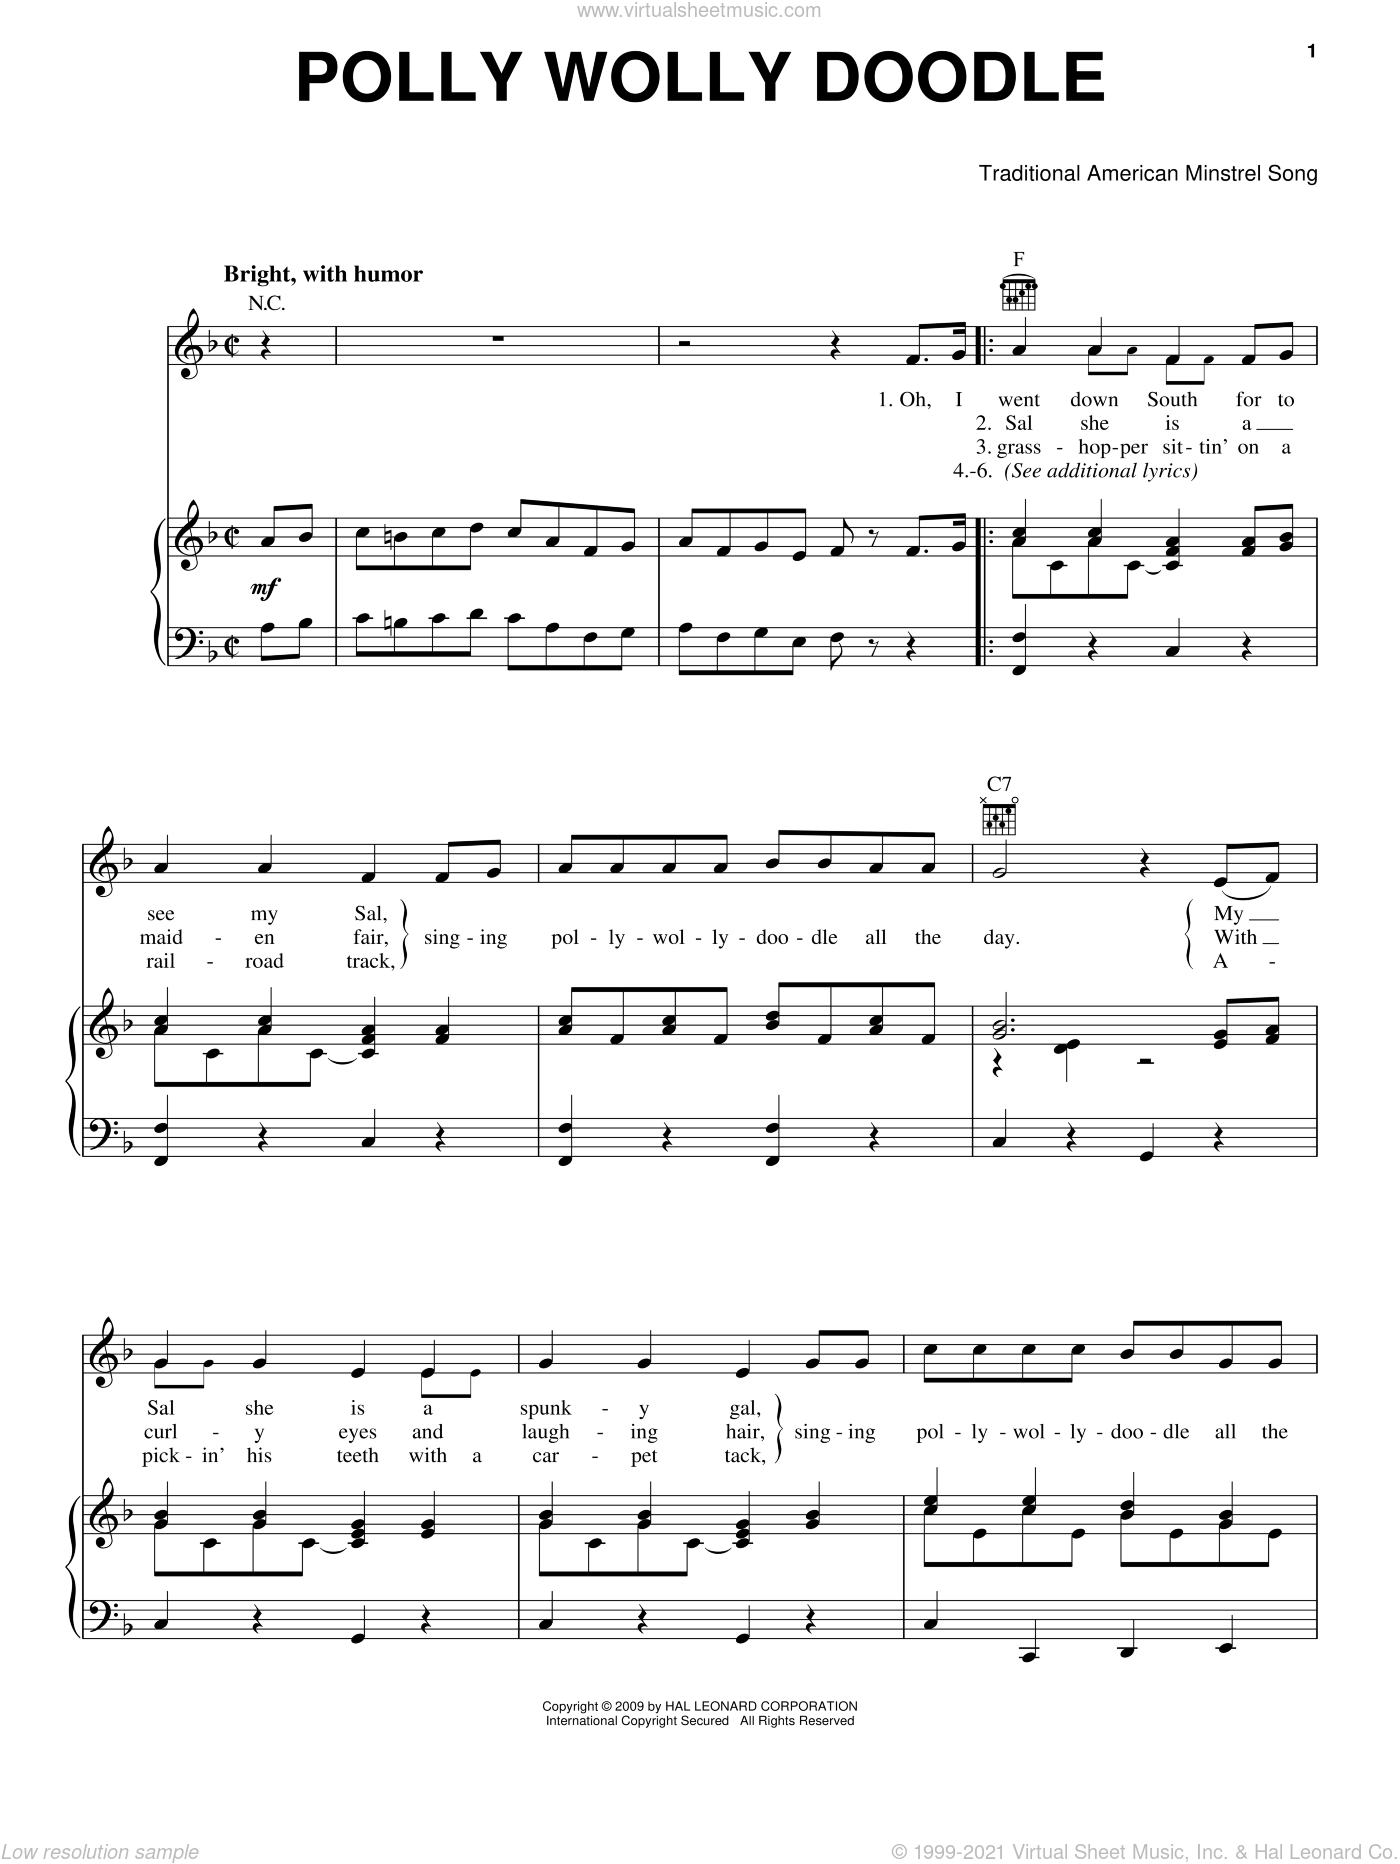 Polly Wolly Doodle sheet music for voice, piano or guitar